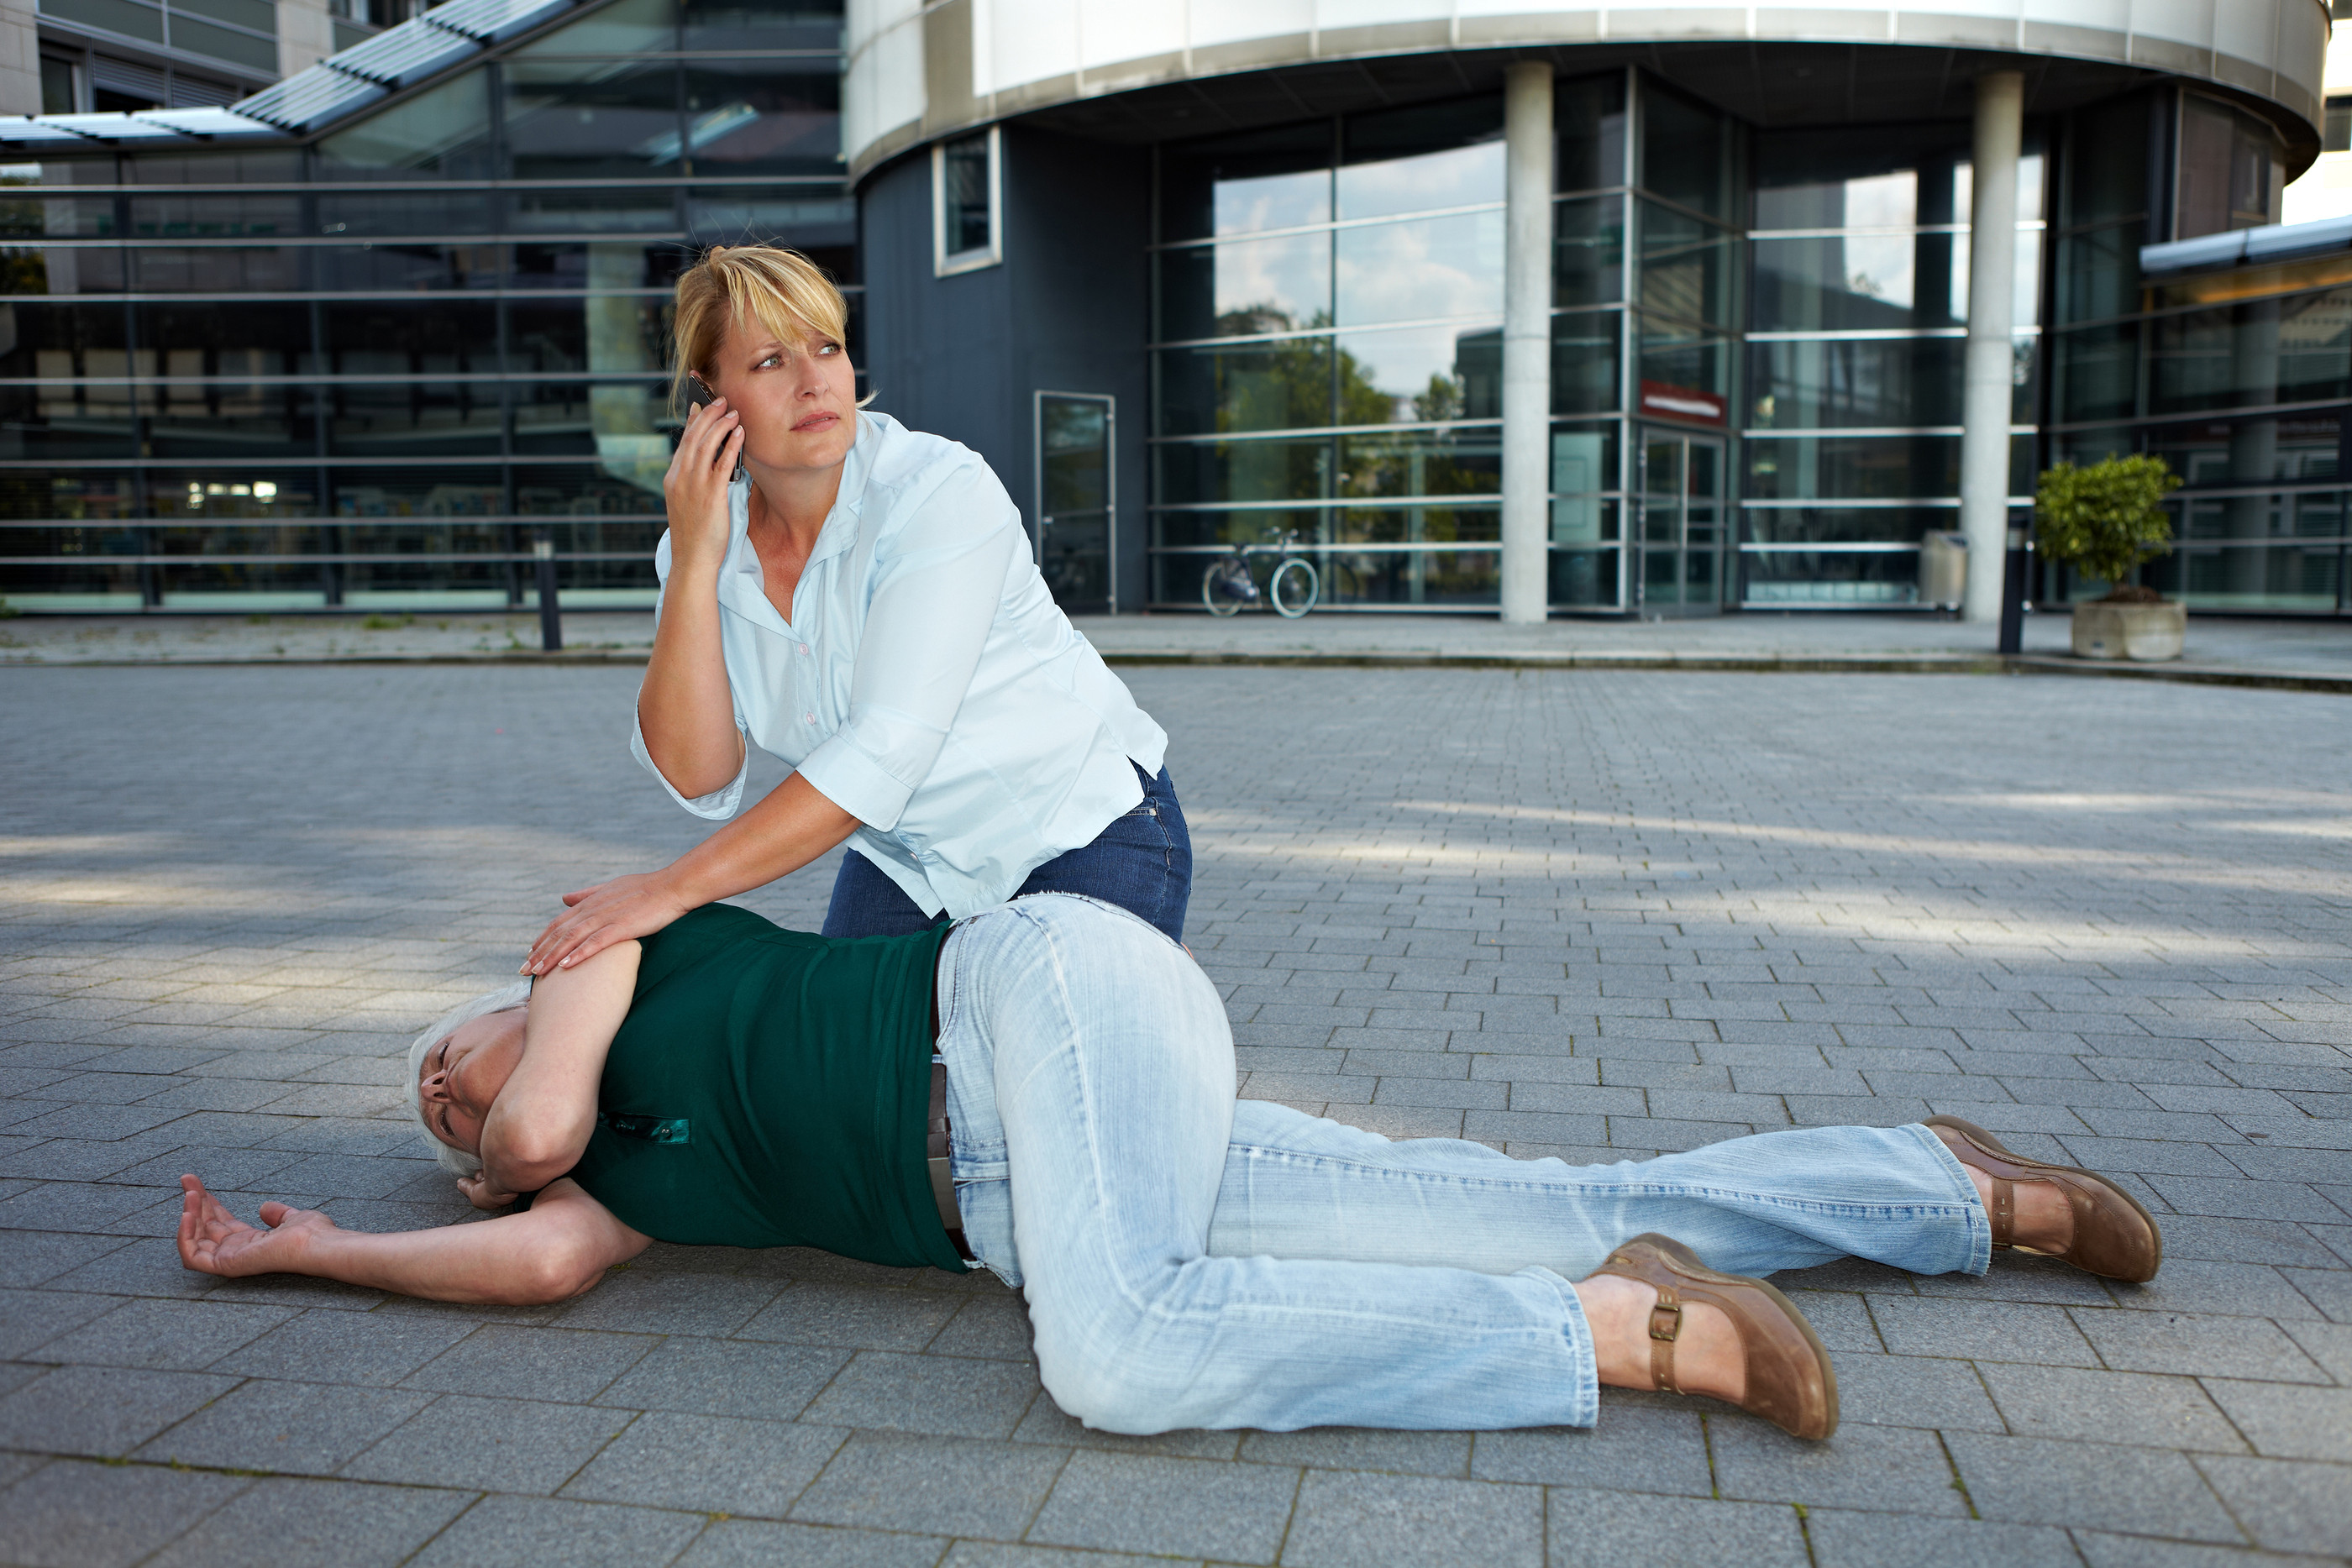 fainting-Passerby-Making-Emergency-Call-23636249